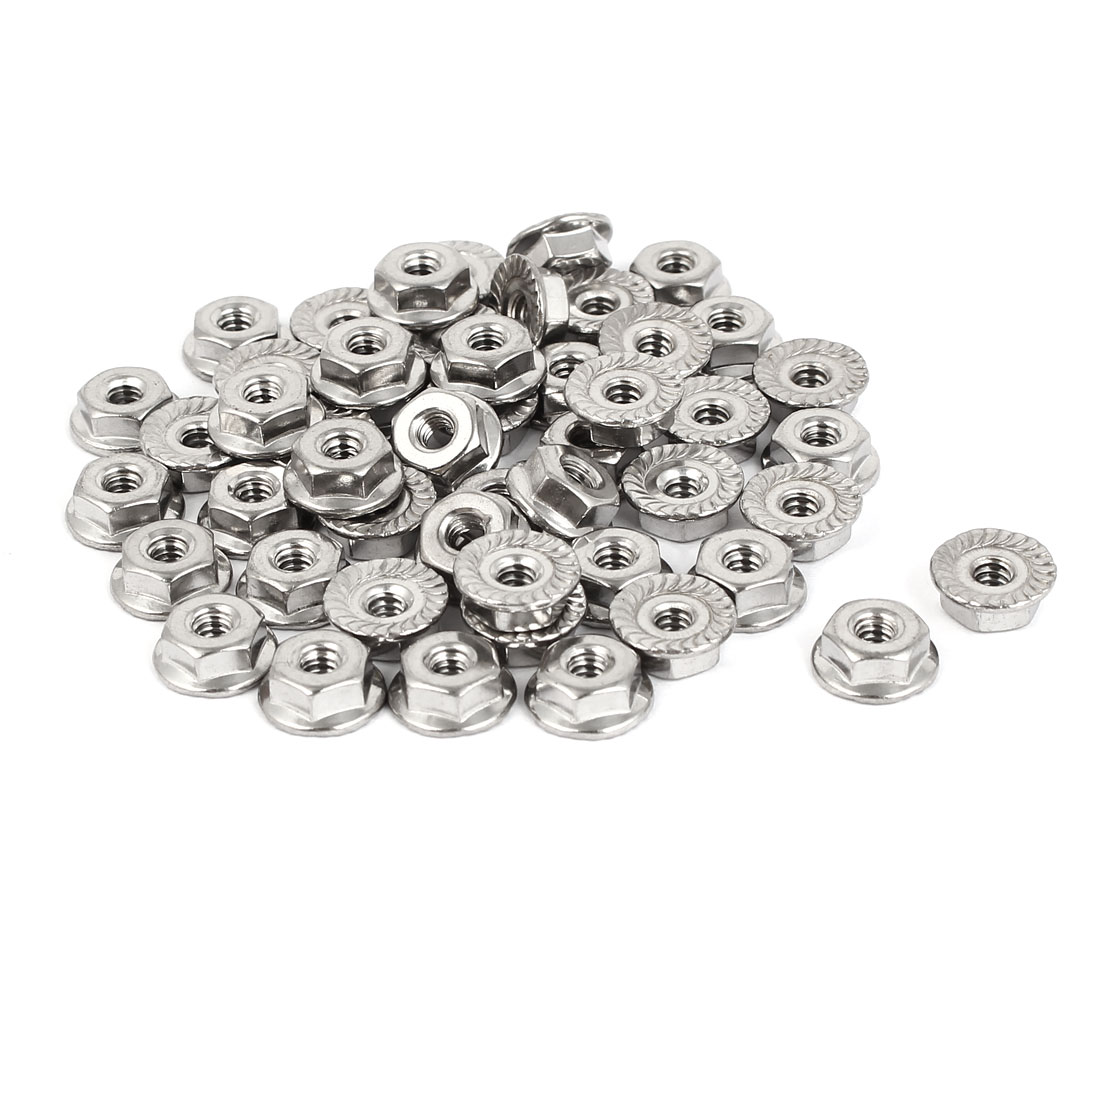 6#-32 304 Stainless Steel Serrated Flange Hex Machine Screw Lock Nuts 50pcs